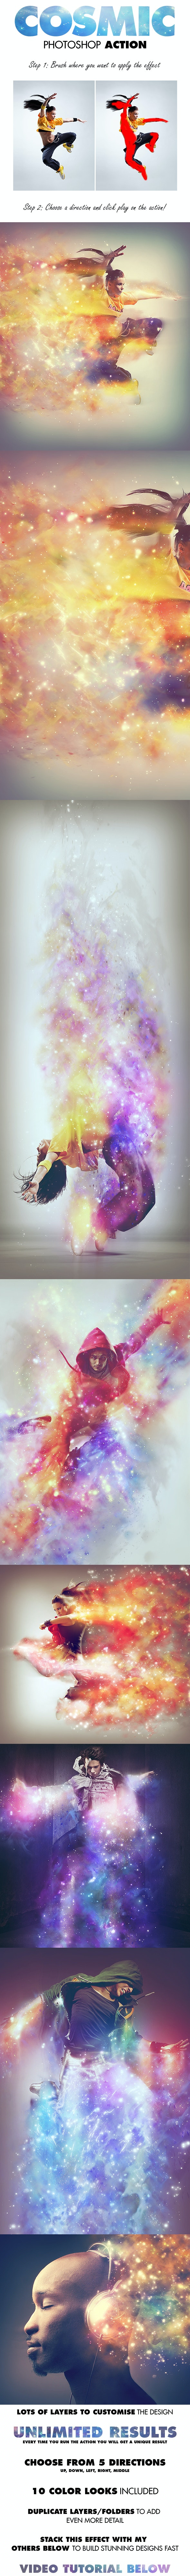 Cosmic Photoshop Action - Photo Effects Actions